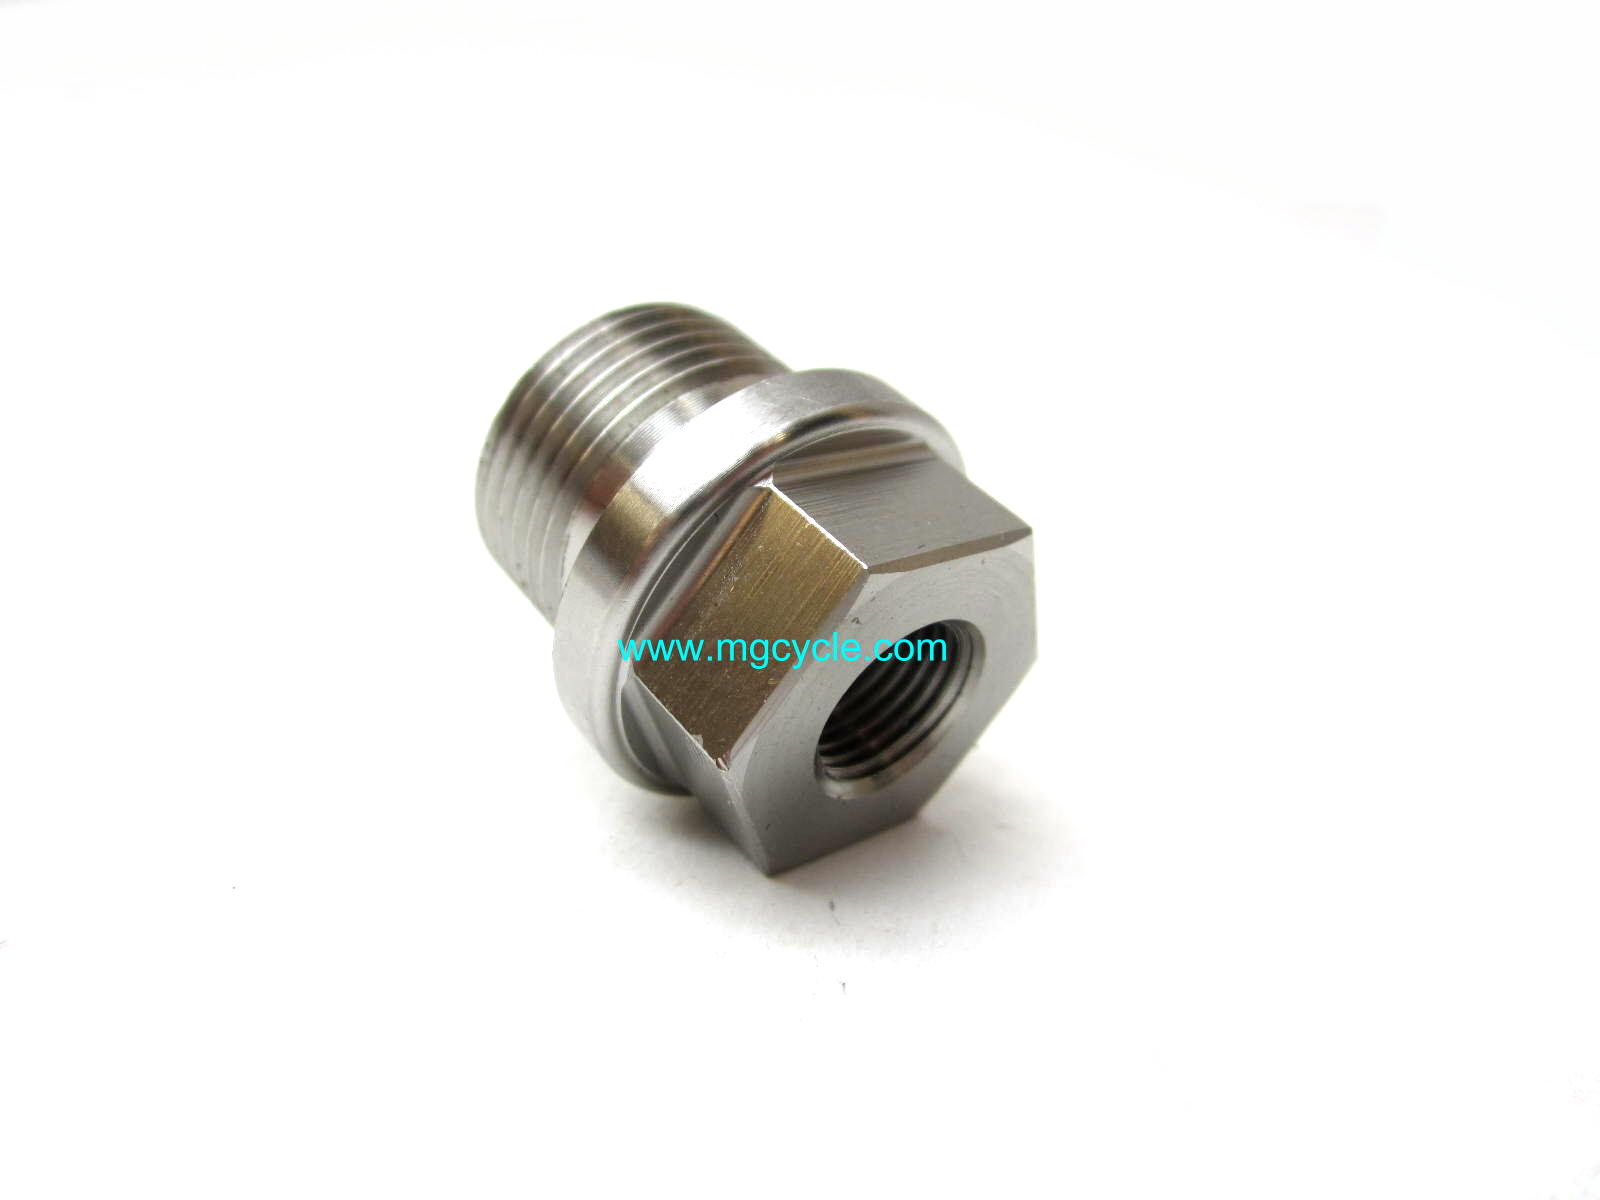 Oil drain plug, stainless steel, hex head, with hole